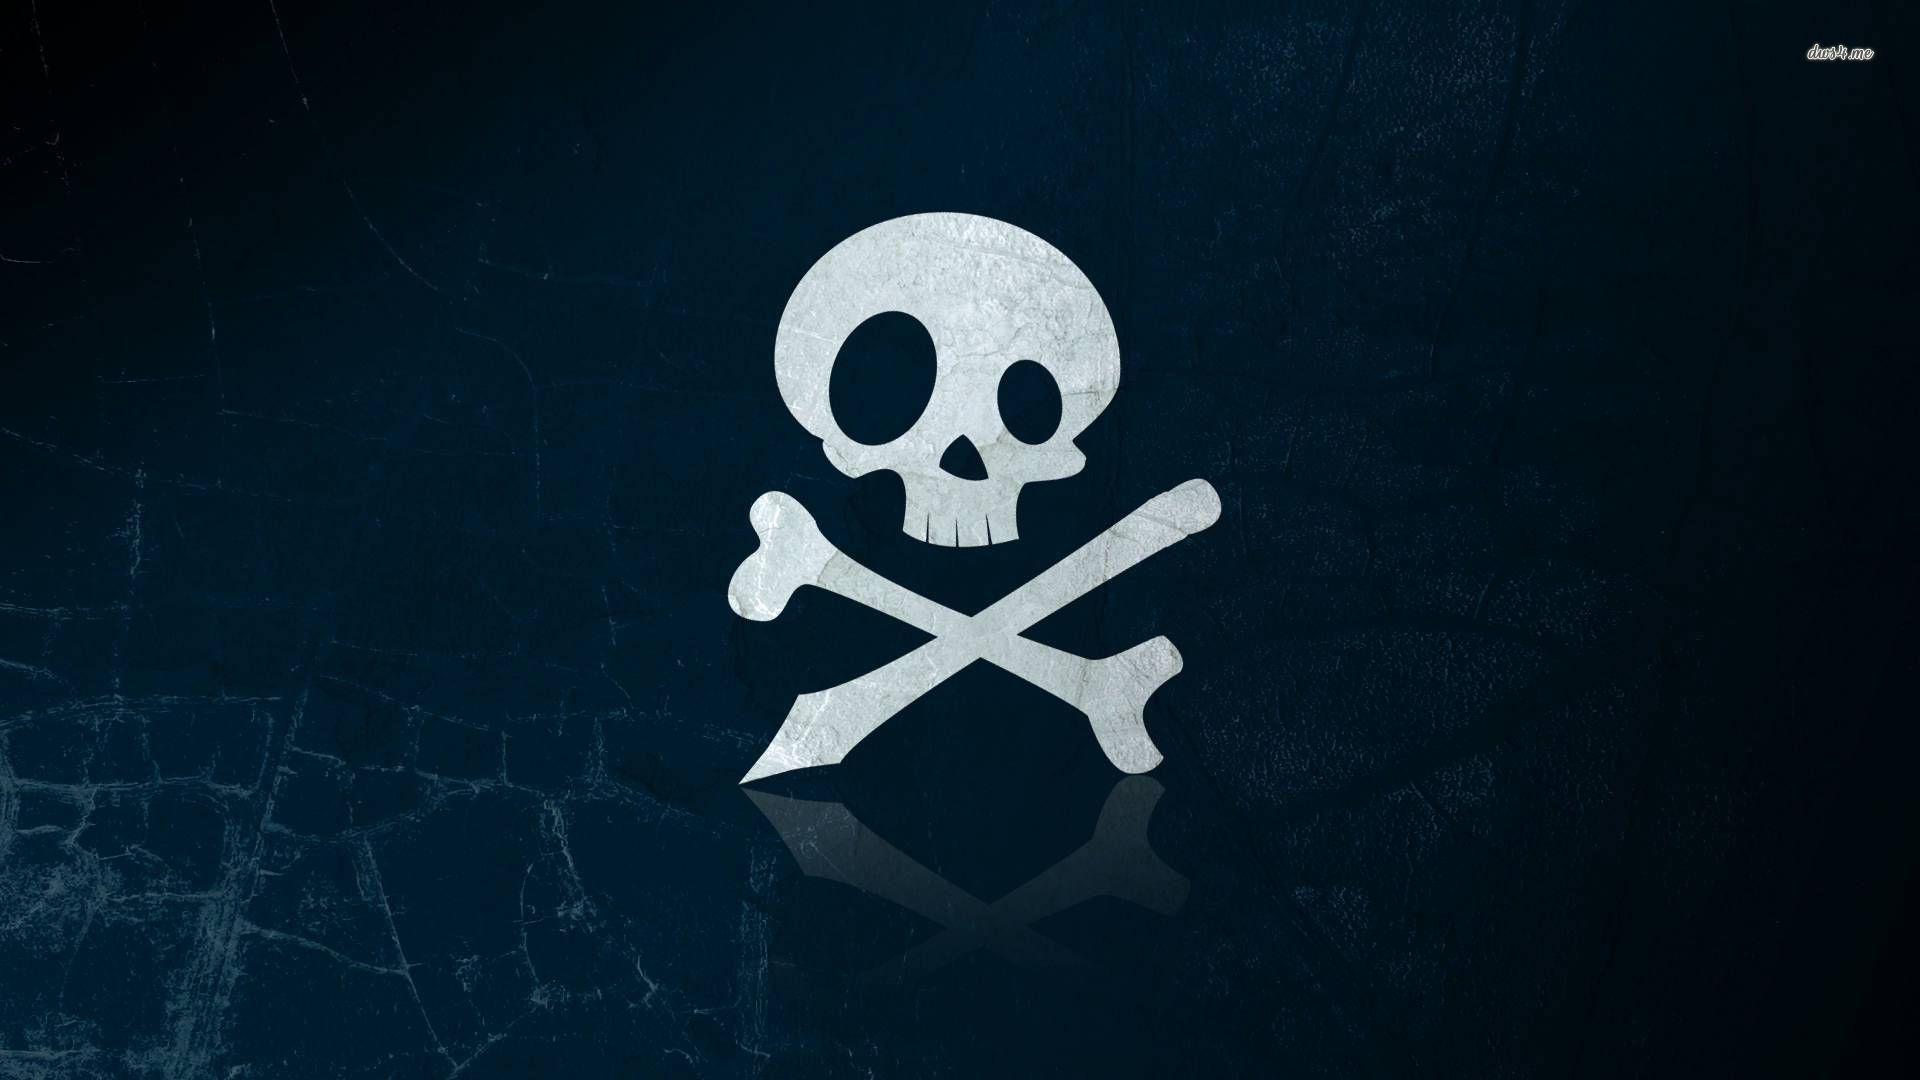 Skull And Crossbones Wallpaper - WallpaperSafari